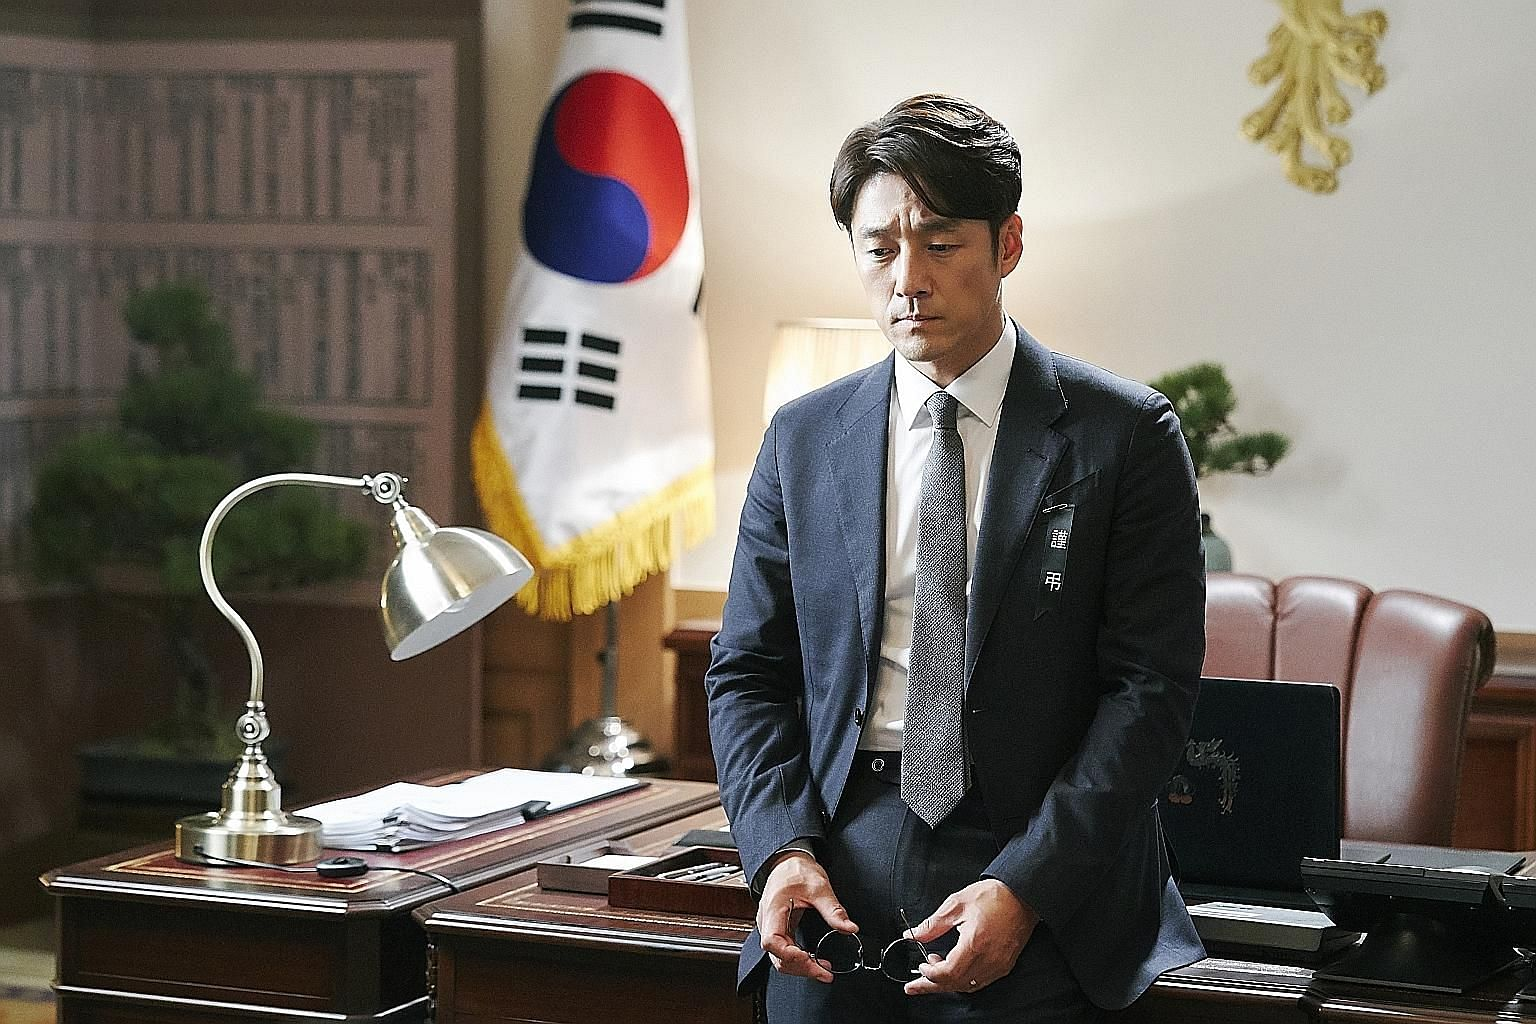 Lee Jung-jae (above left) is a wily chief of staff to Kim Kap-soo (above right), a floor leader of a fictional political party in Chief Of Staff. Actor Ji Jin-hee (right) stars as a mid-ranking politician who is suddenly made president of South Korea